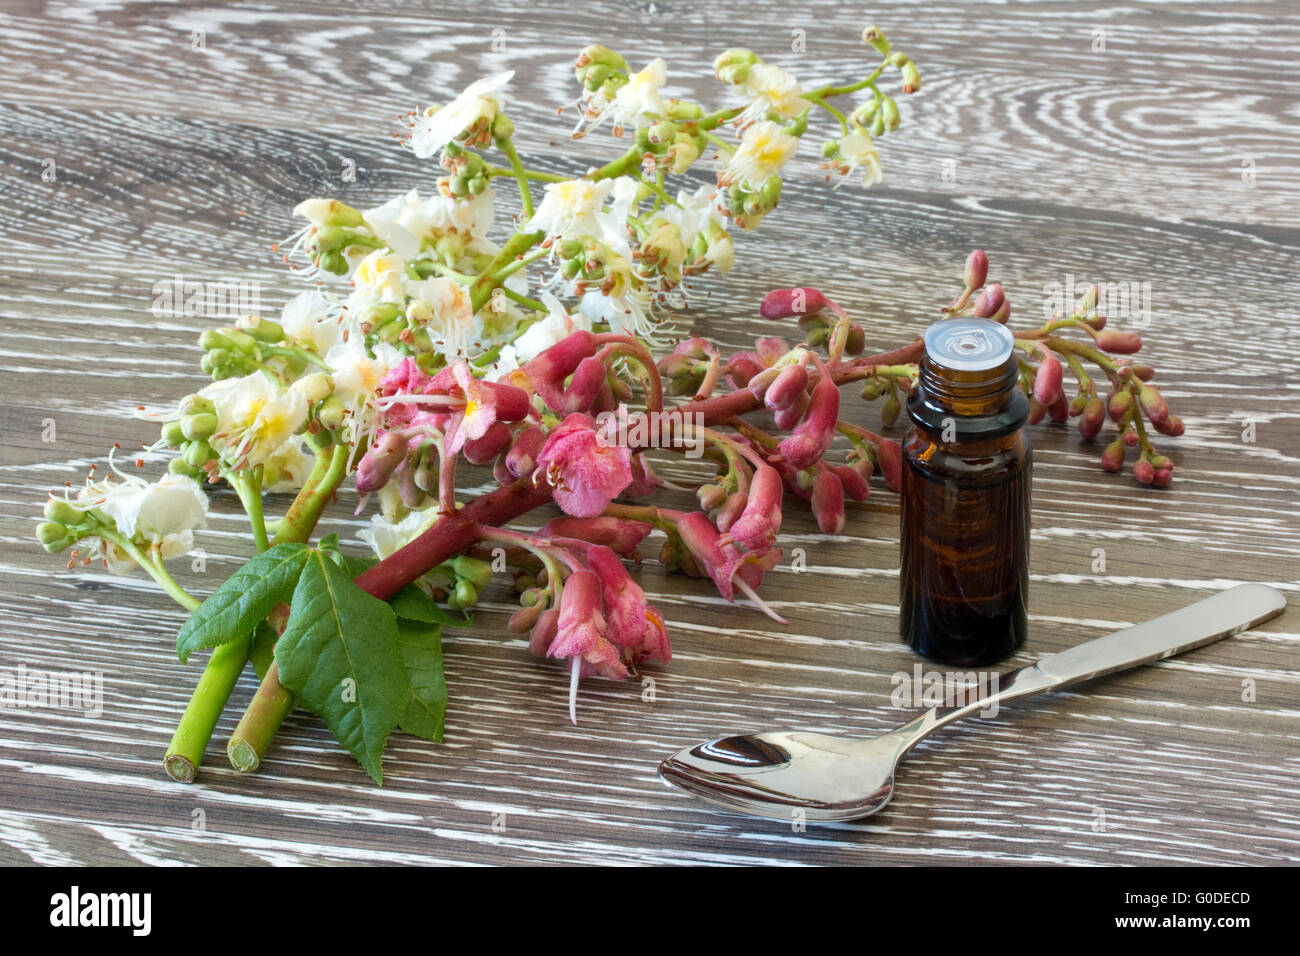 Bach flower remedies of red and white chestnut stock photo bach flower remedies of red and white chestnut mightylinksfo